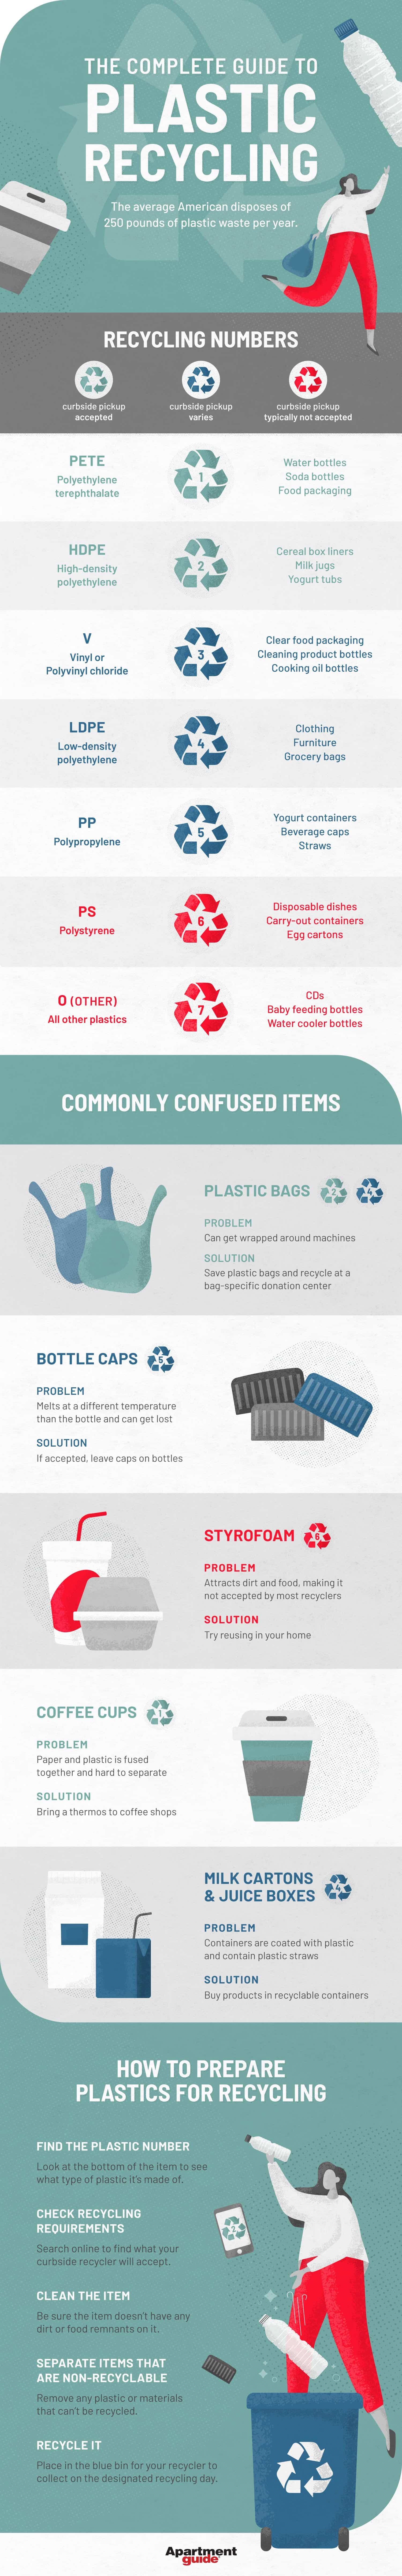 infographic for plastic recycling